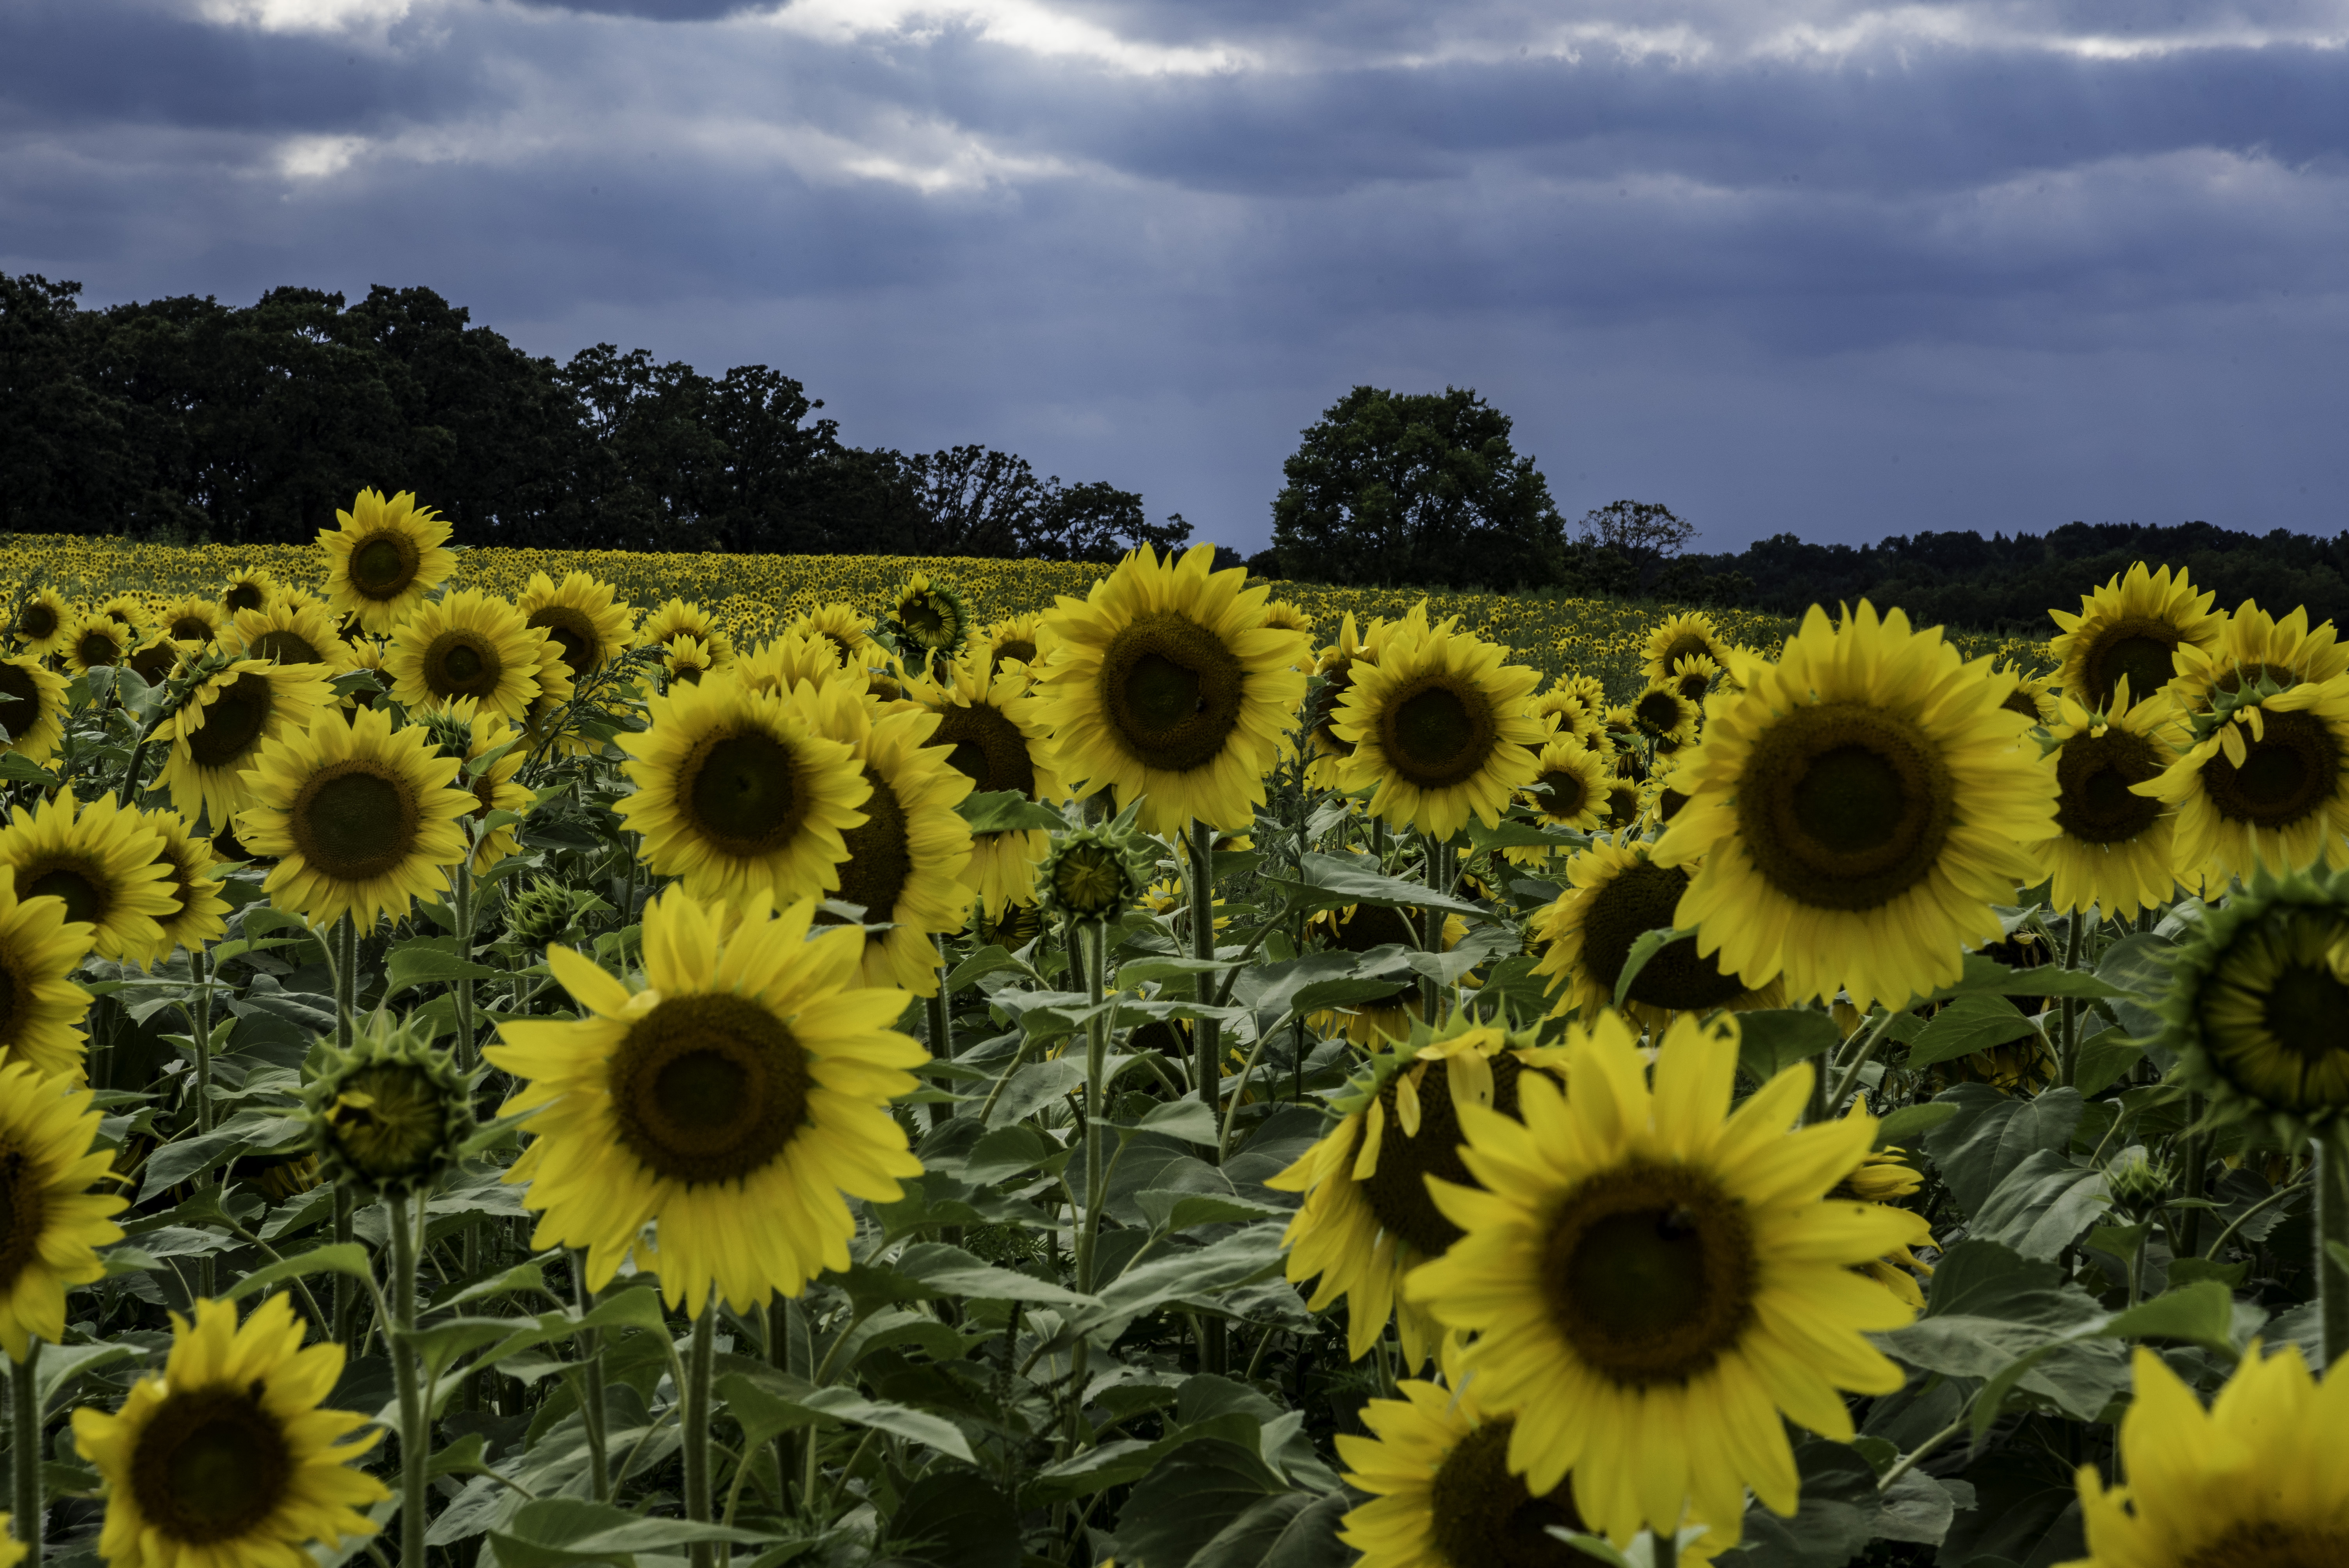 Large Sunflowers blooming at the Pope Conservancy Farm ...